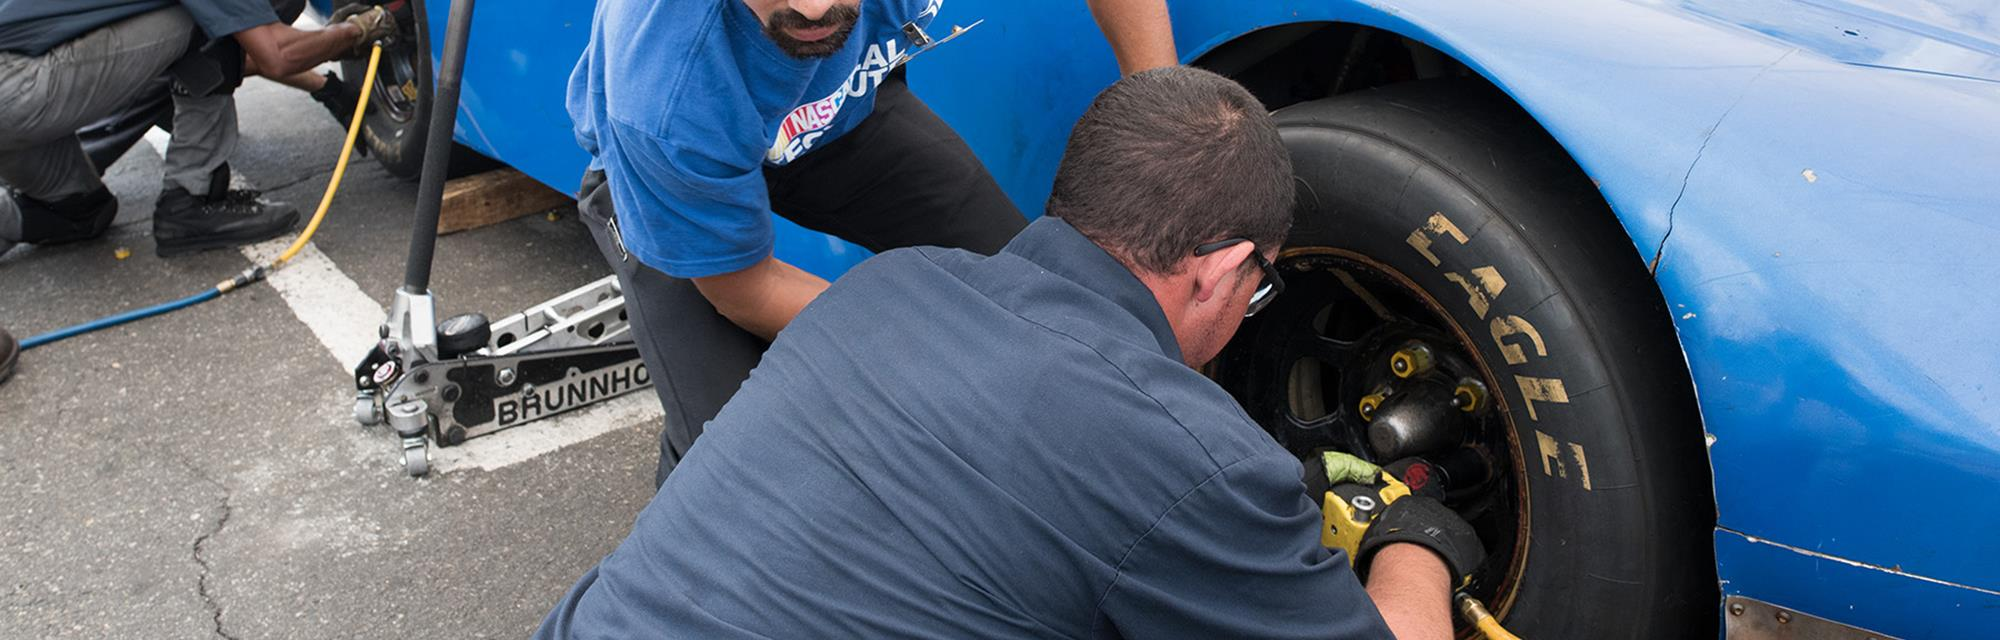 UTI students training to become a pit crew